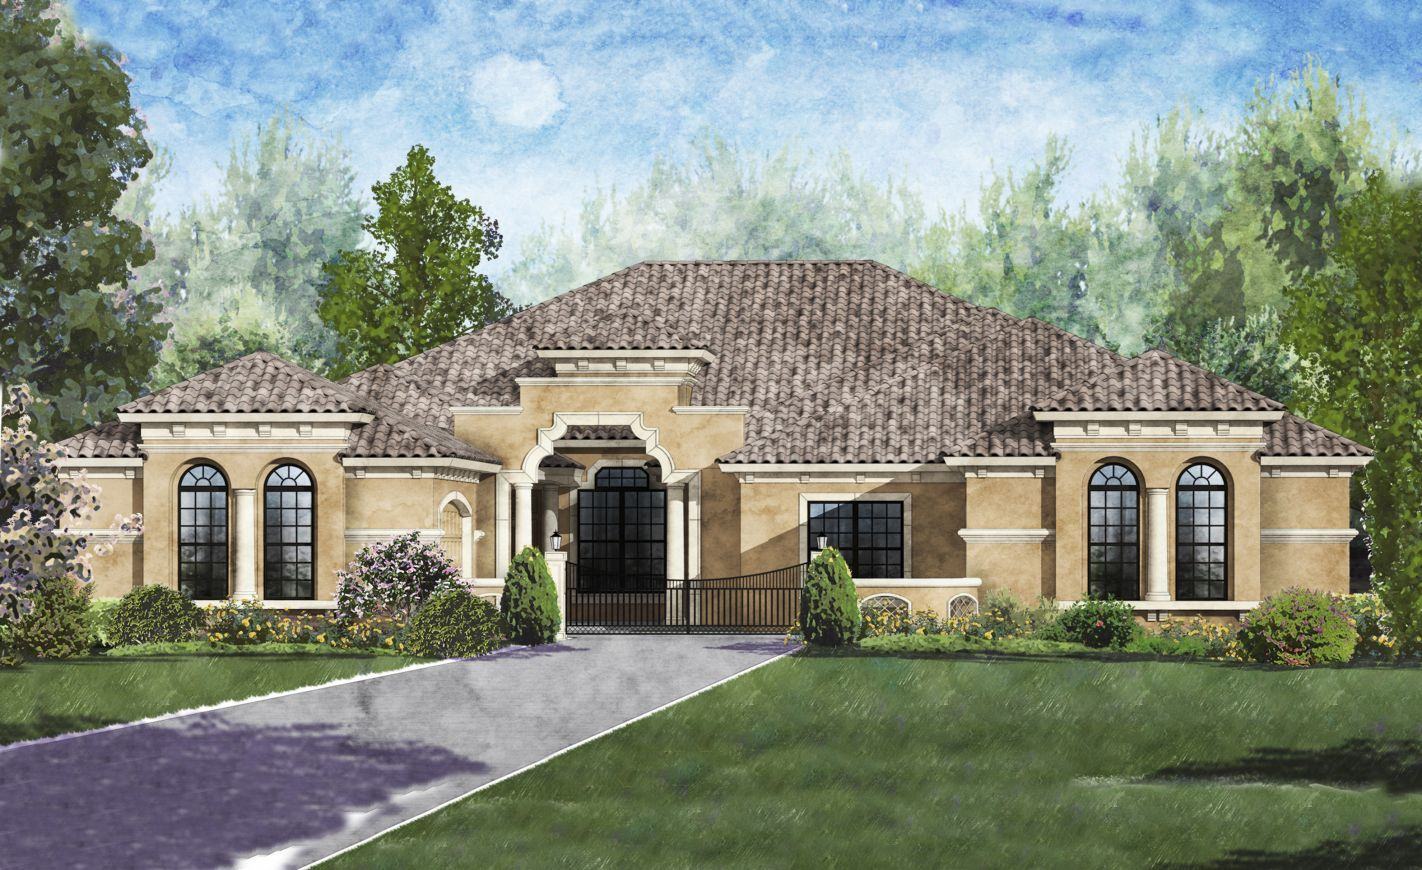 Unique la famille pour l Vente à Julington Creek - Plantation Iv 1000 West Dorchester Drive St. Johns, Florida 32259 United States